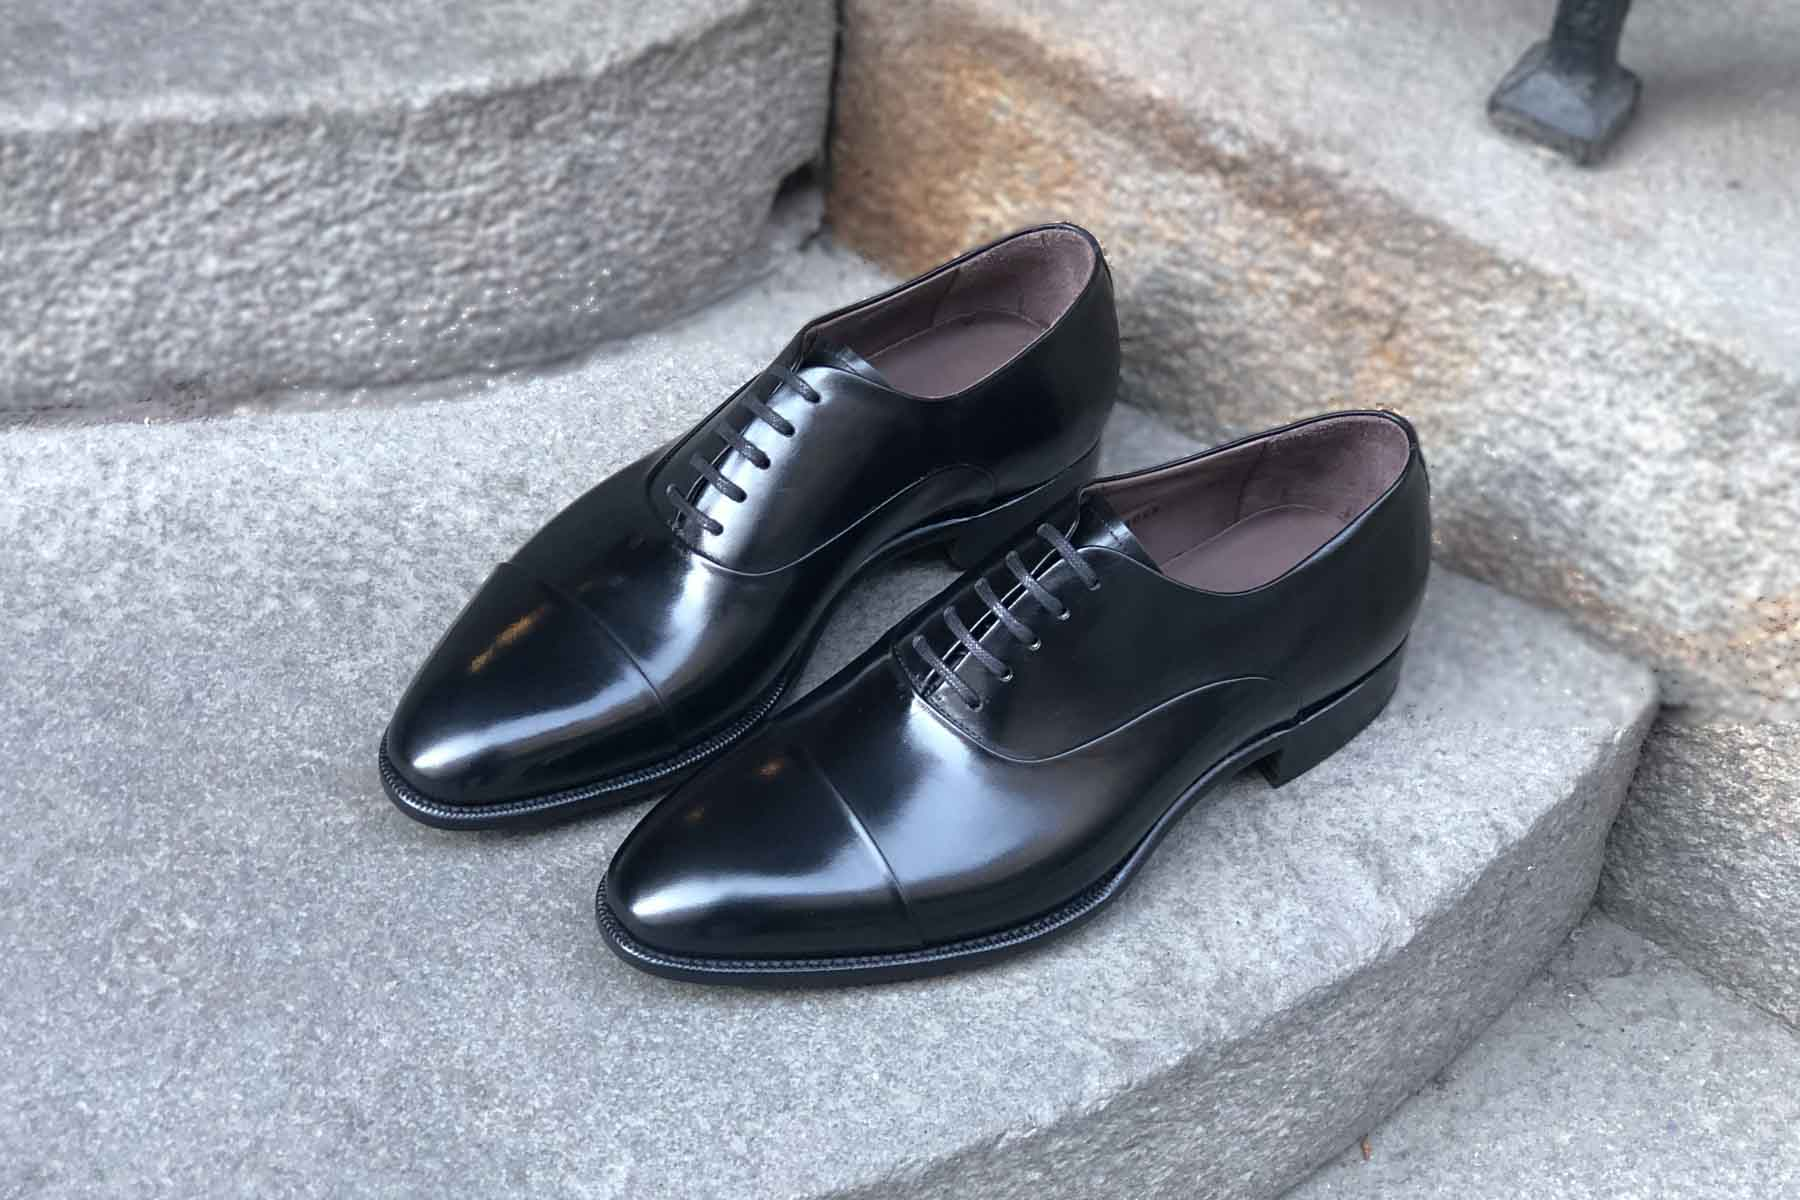 Carlos Santos 9899 Handgrade Oxford in Black Calf for The Noble Shoe Overview Sideways